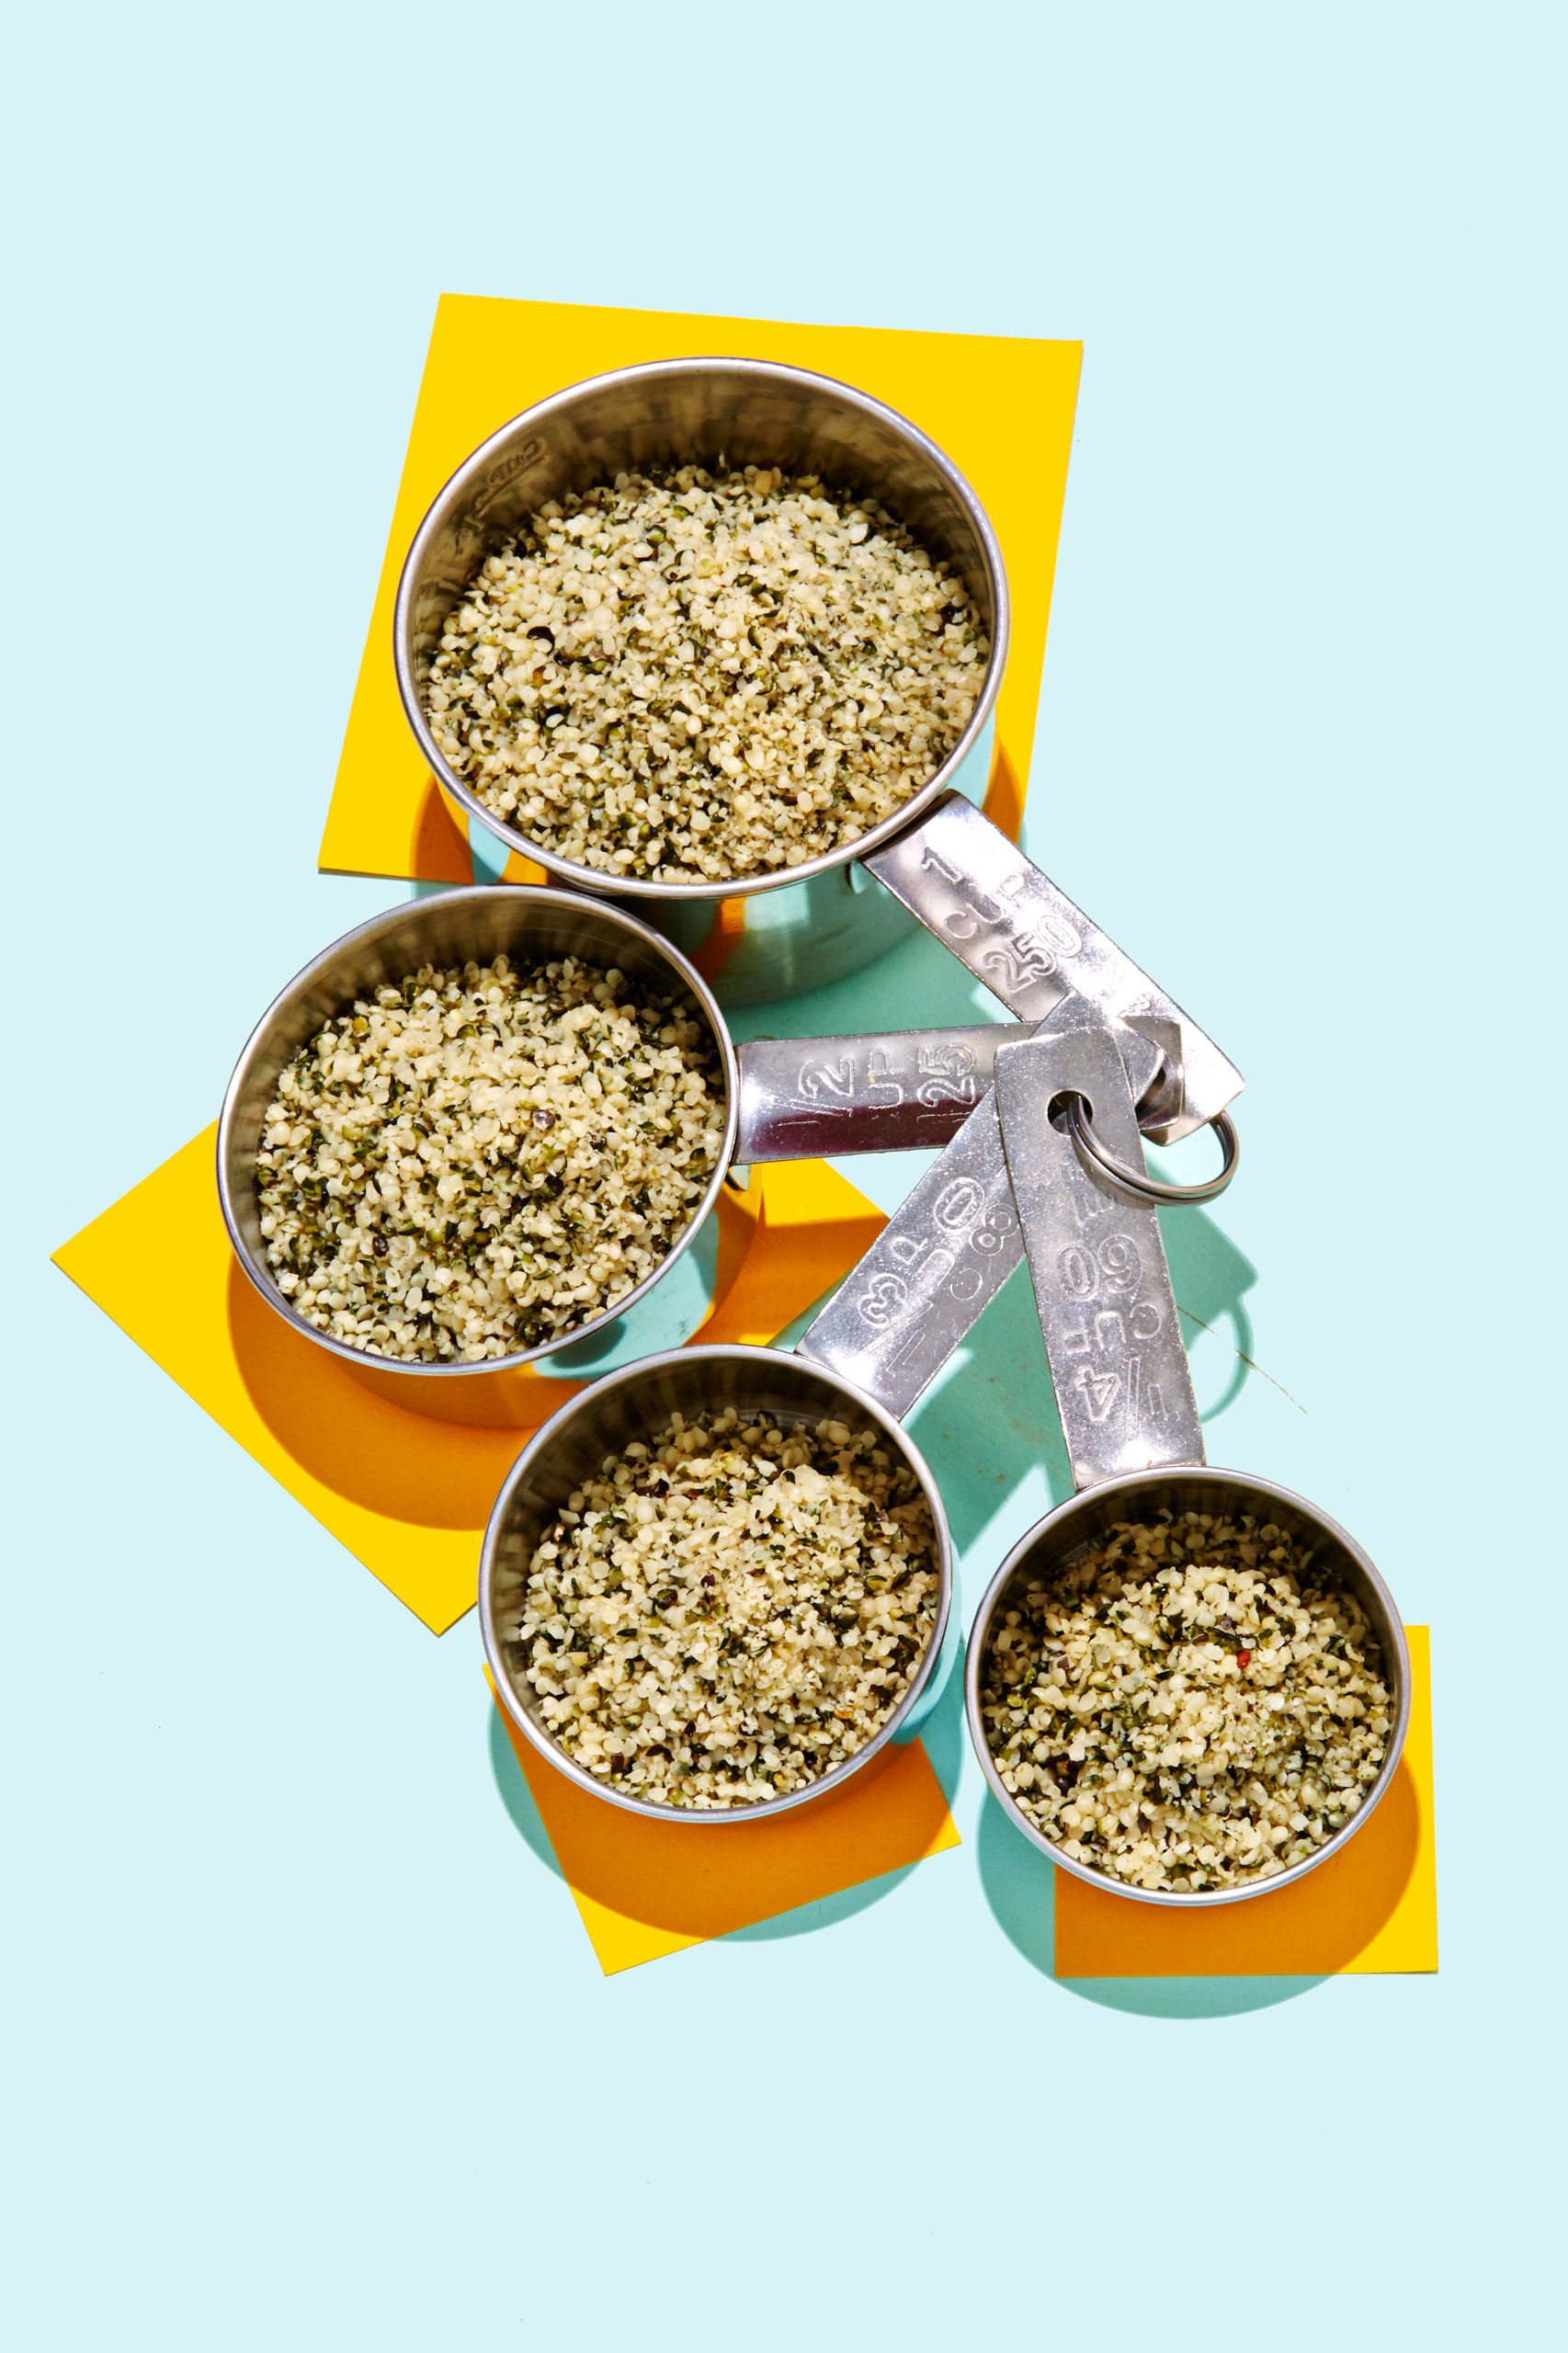 healthiest foods, health food, diet, nutrition, time.com stock, hemp seeds